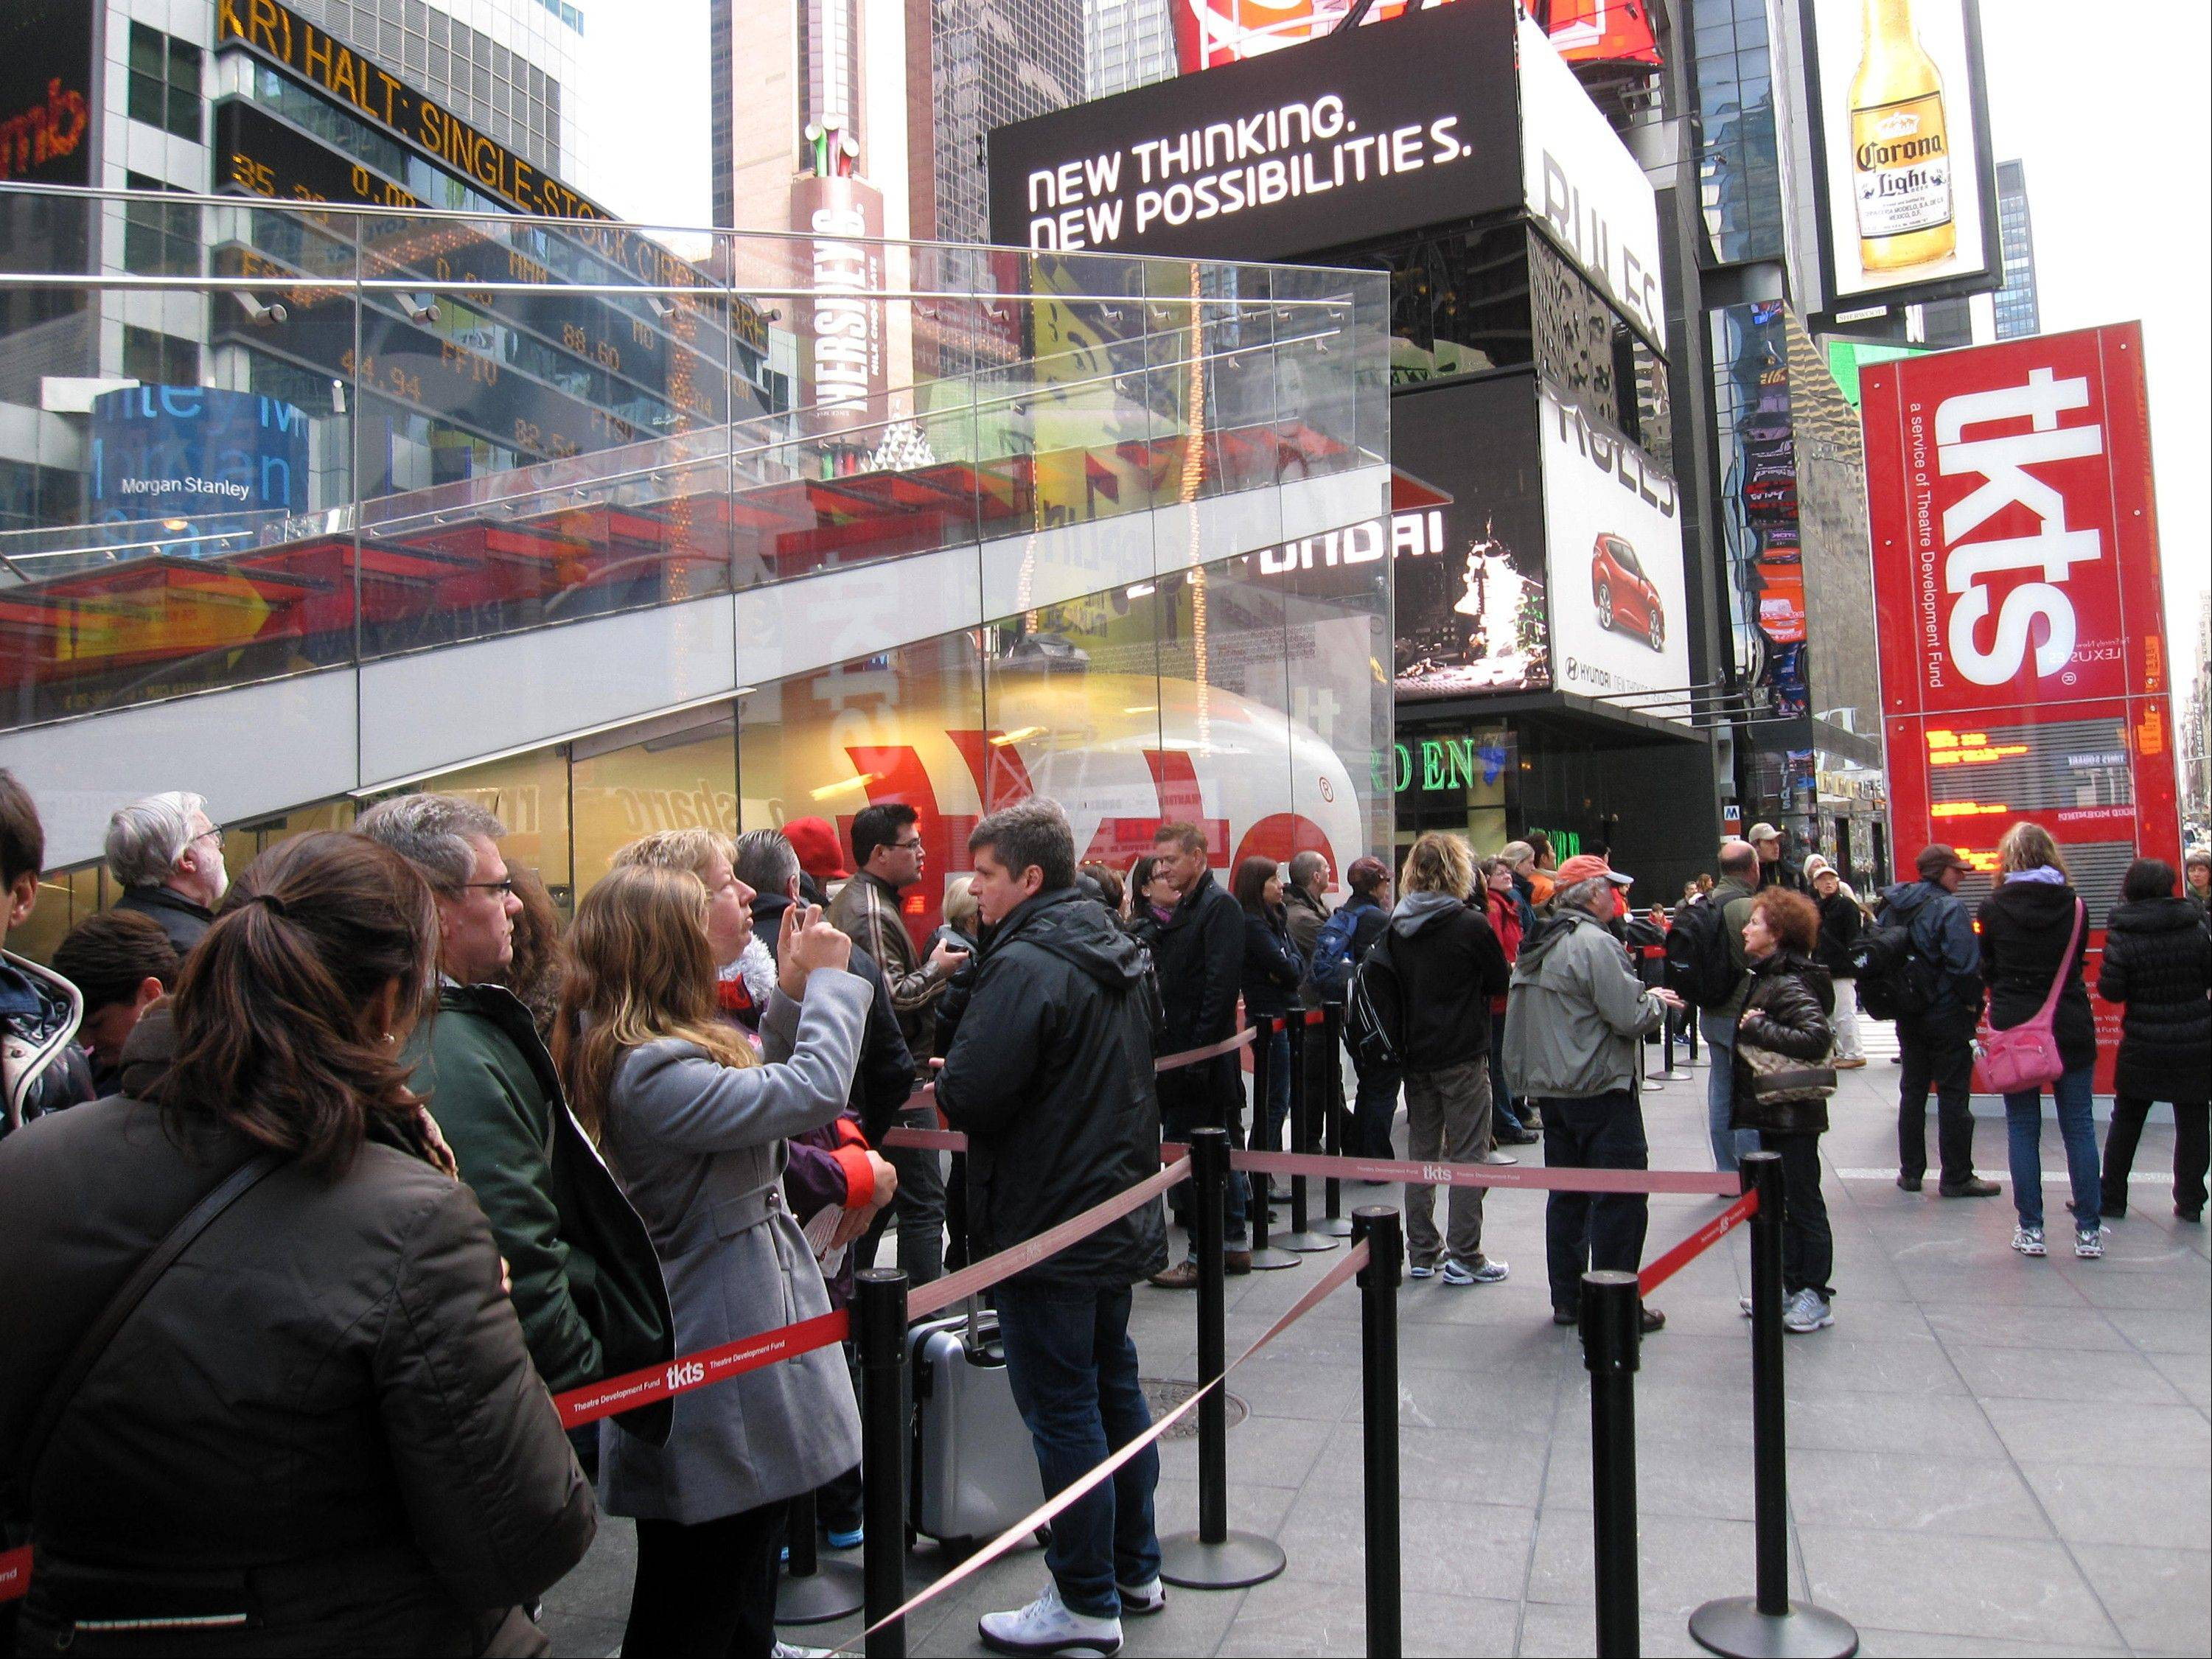 A line of ticket-buyers Wednesday wait at the TKTS booth, which sells discount tickets to Broadway shows in New York's Times Square. Most Broadway theaters reopened Wednesday for regular matinee and evening performances following several days of closures because of superstorm Sandy.